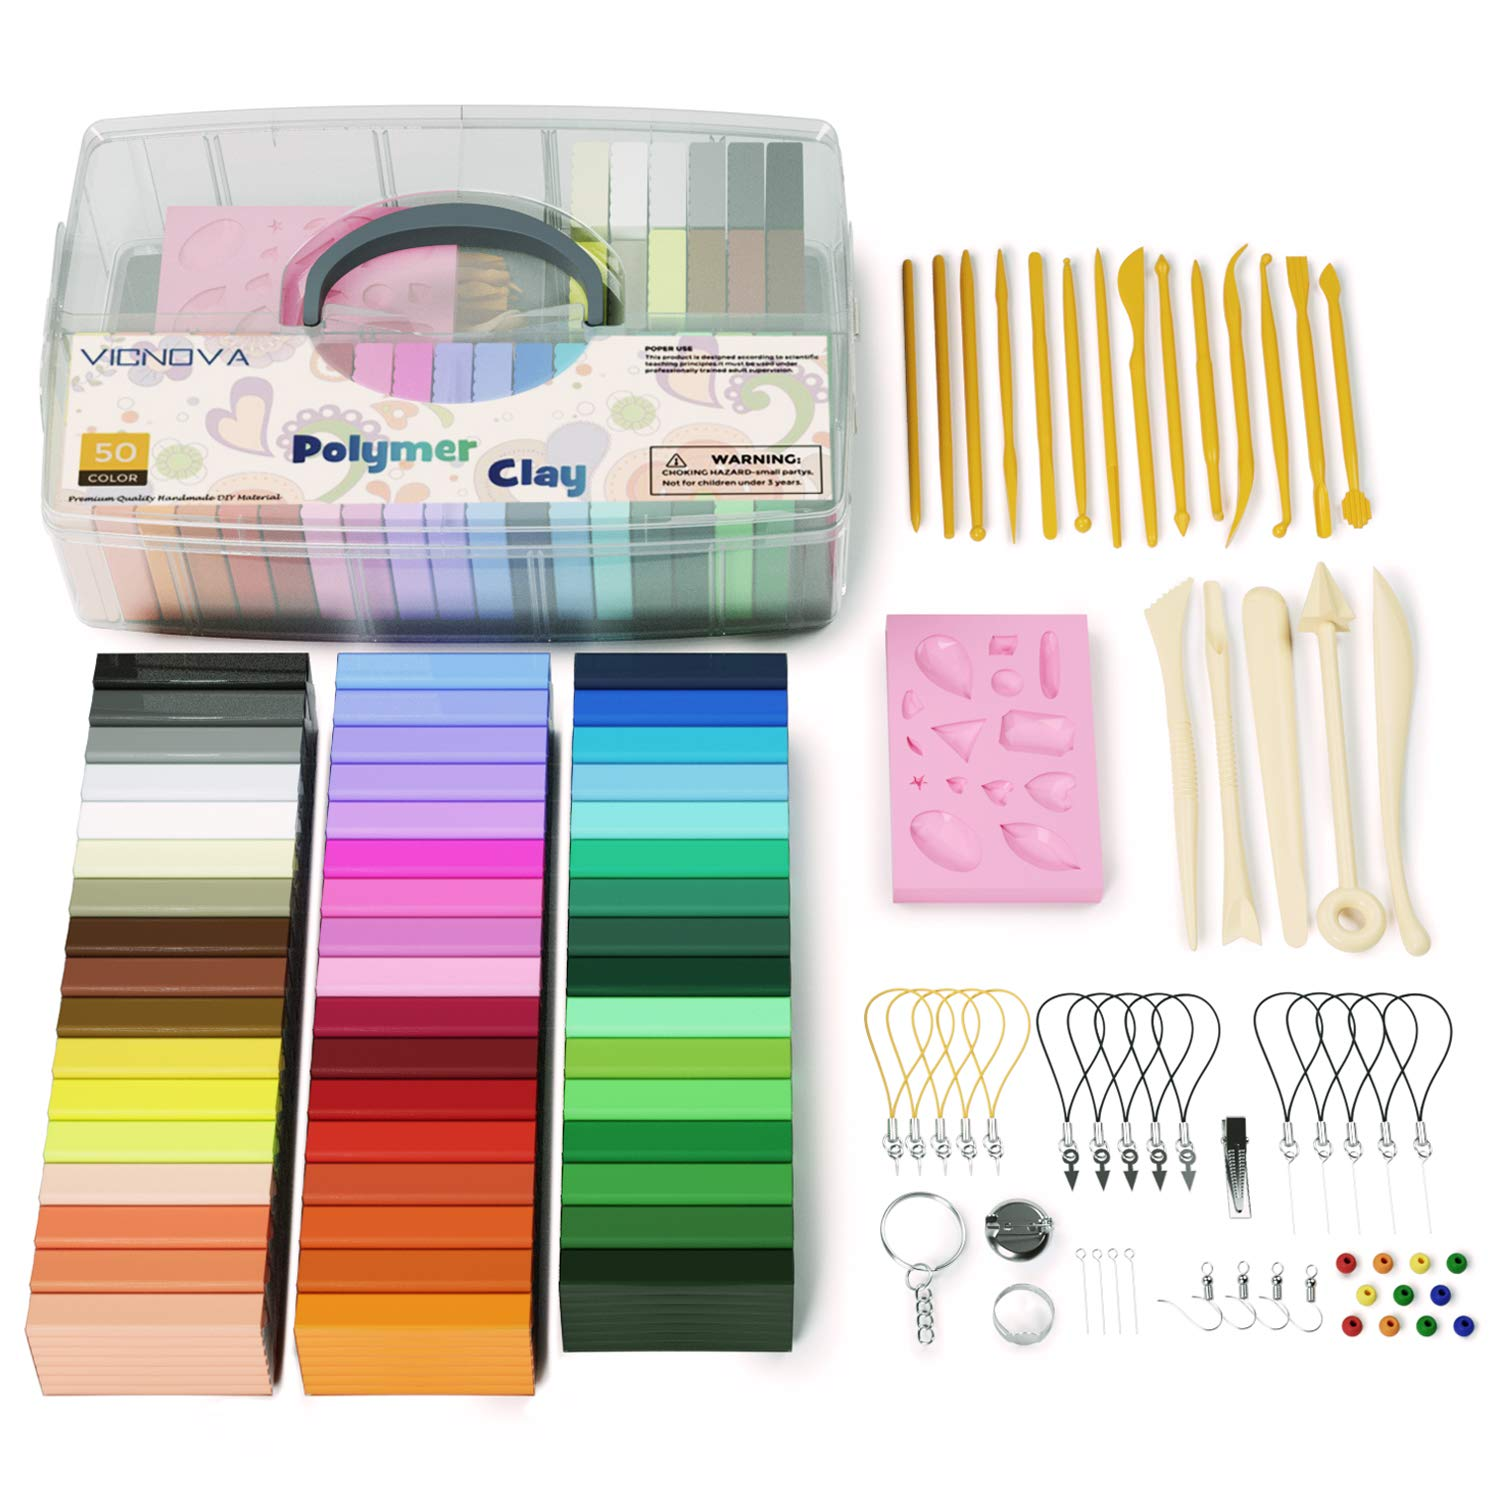 50 Colors Polymer Clay, Modeling Clay with 29 Clay Tools and Accessories, Starter Kit Clay for Kids, Non-Stick, Non-Toxic, Ideal DIY Gift for Kids by VICNOVA